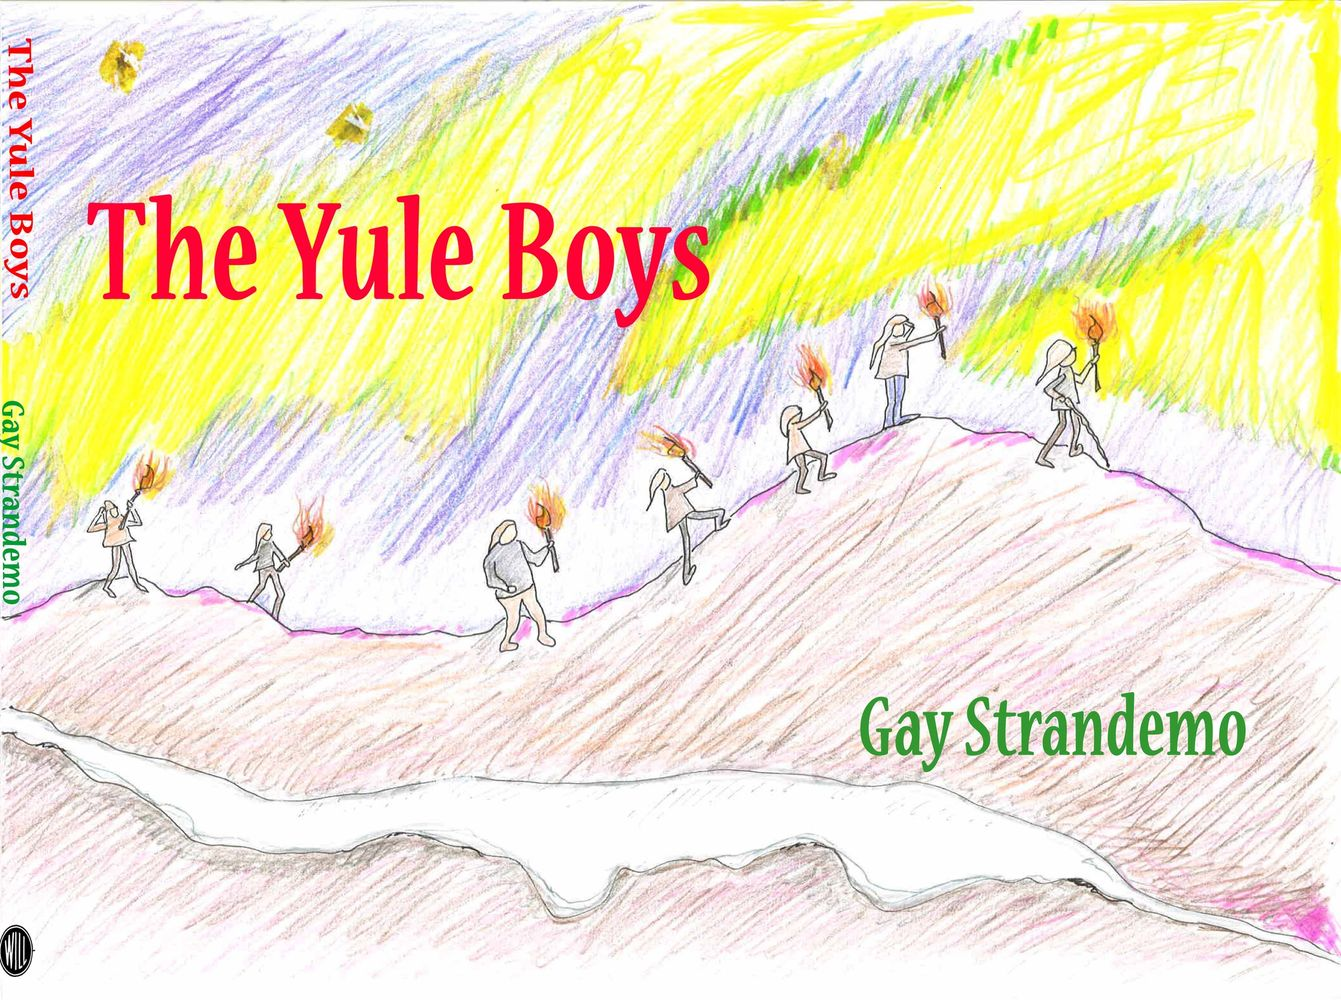 The Yule Boys cover illustrated and written by Gay Strandemo.